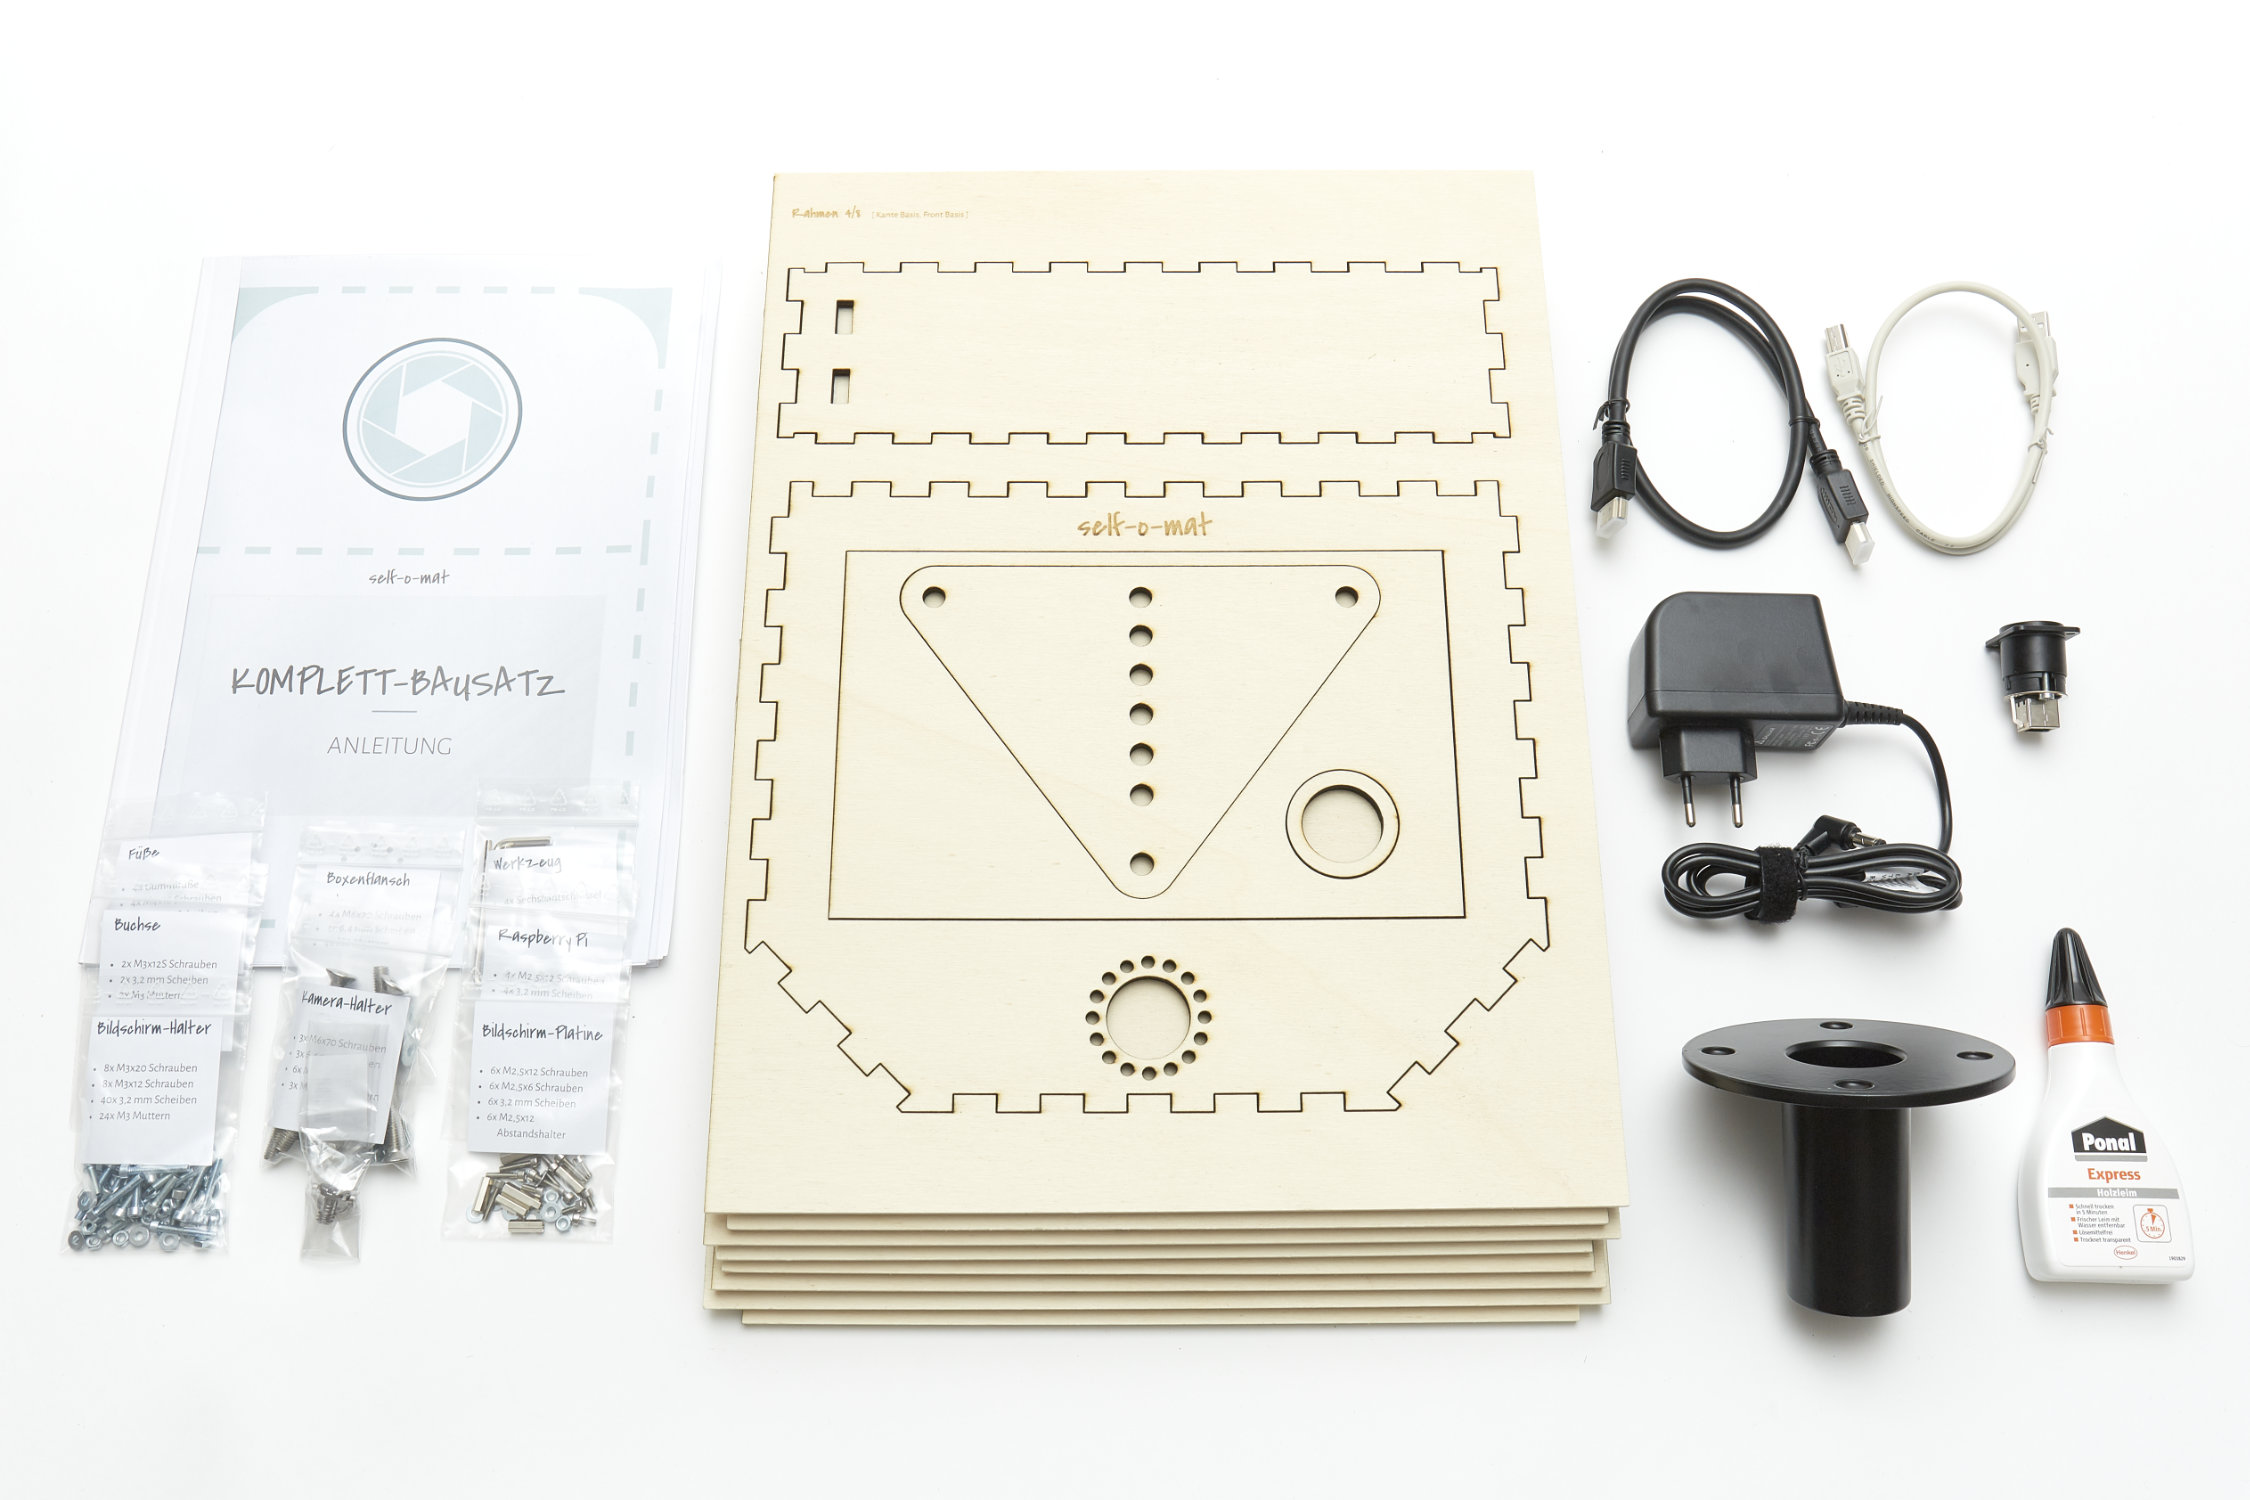 The photo booth kit includes everything you need to build your own photobooth. It starts with the wooden case and ends with electronics and screws.